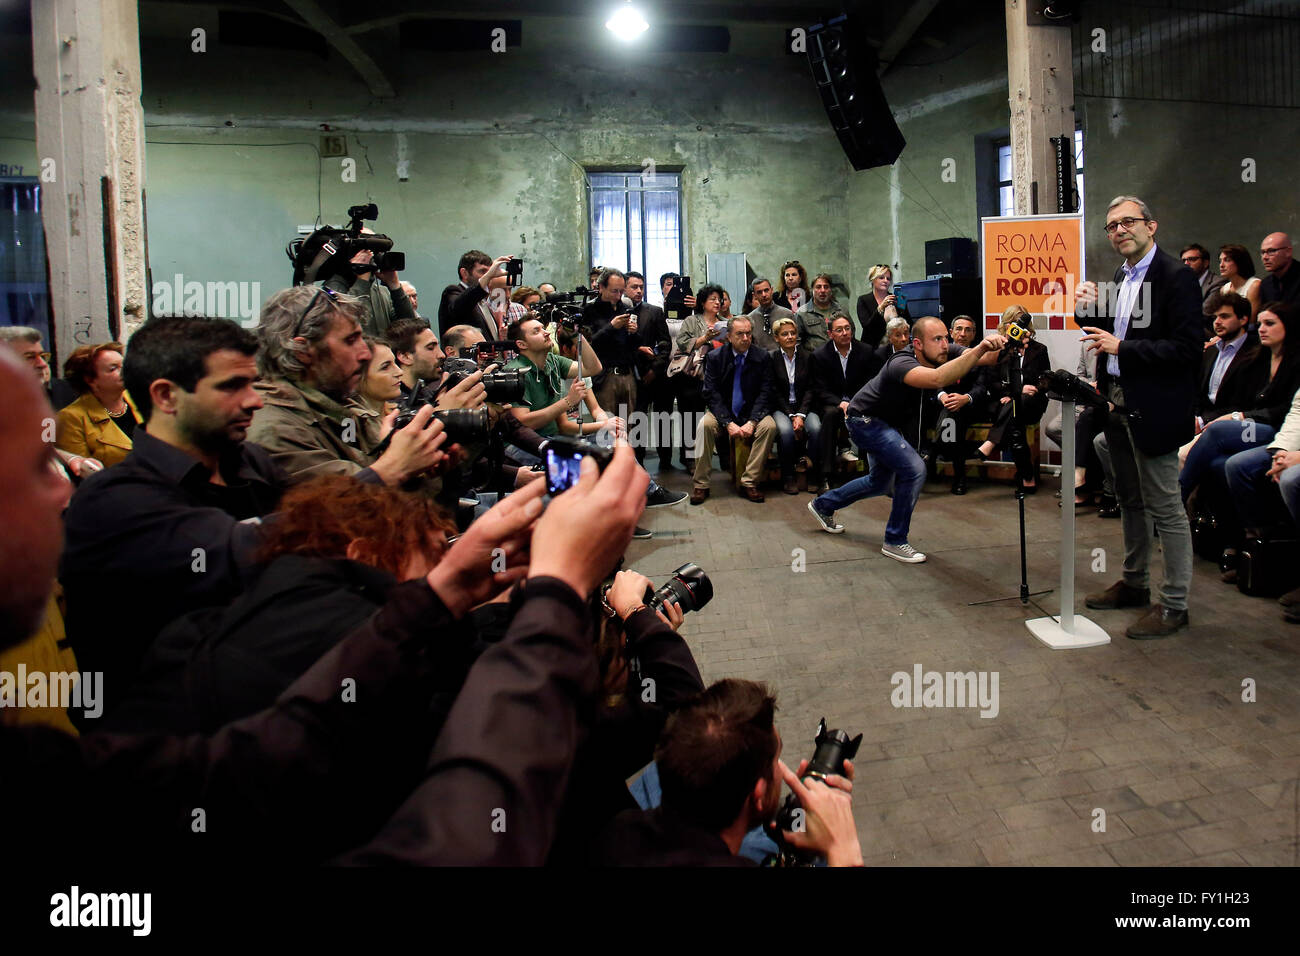 Rome, Italy. 20th April, 2016. Roberto Giachetti with the candidates Rome 20th April 2016. Roberto Giachetti presents - Stock Image